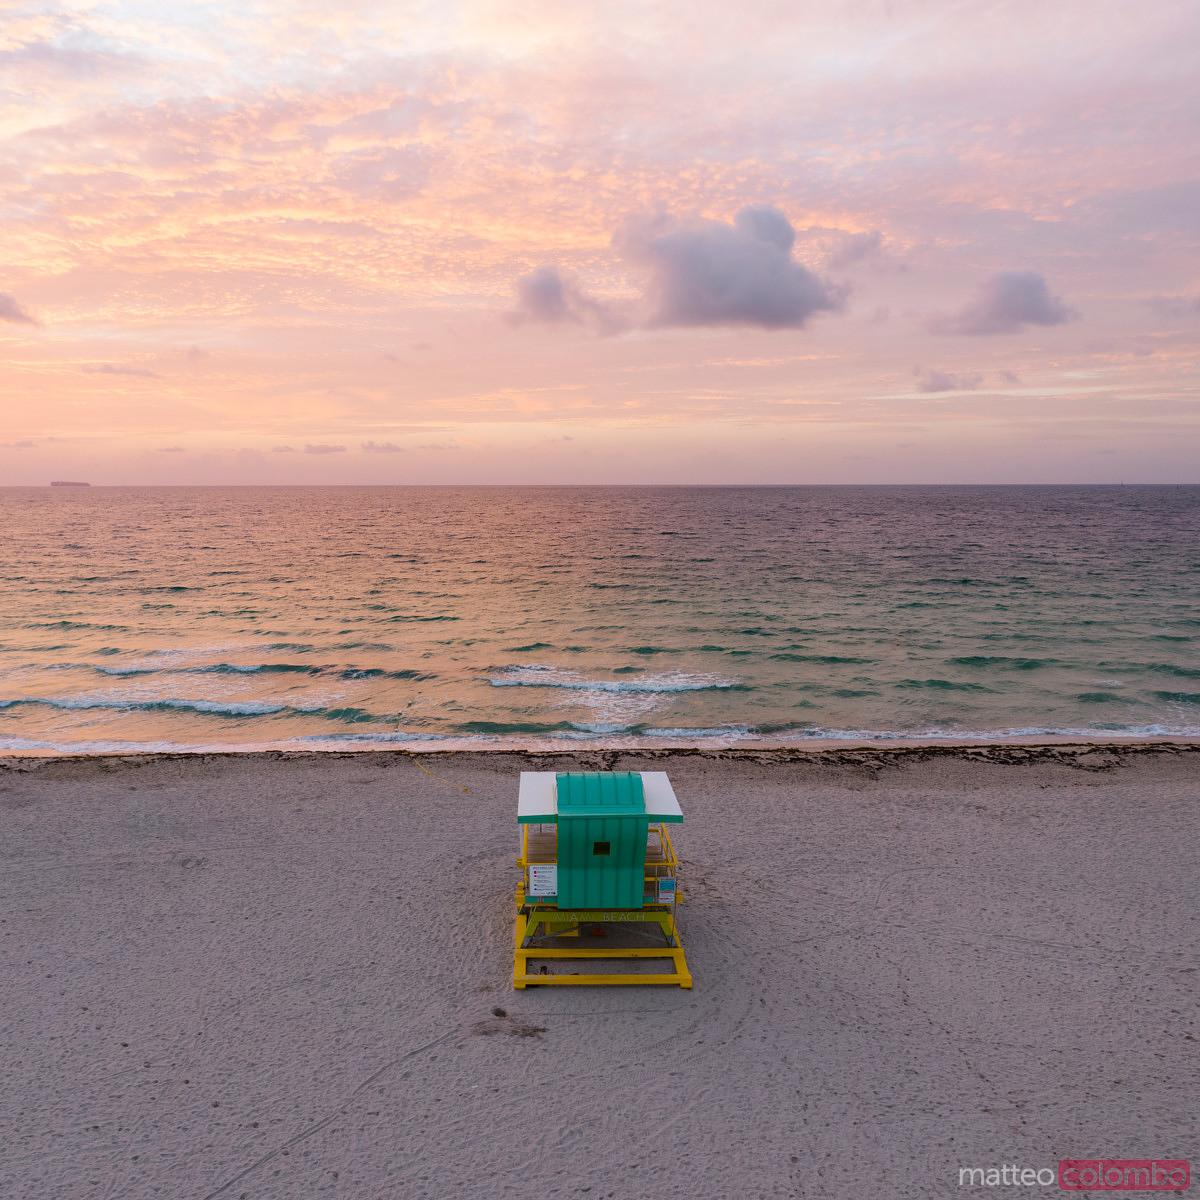 Top view of lifeguard cabin at sunrise, South beach, Miami